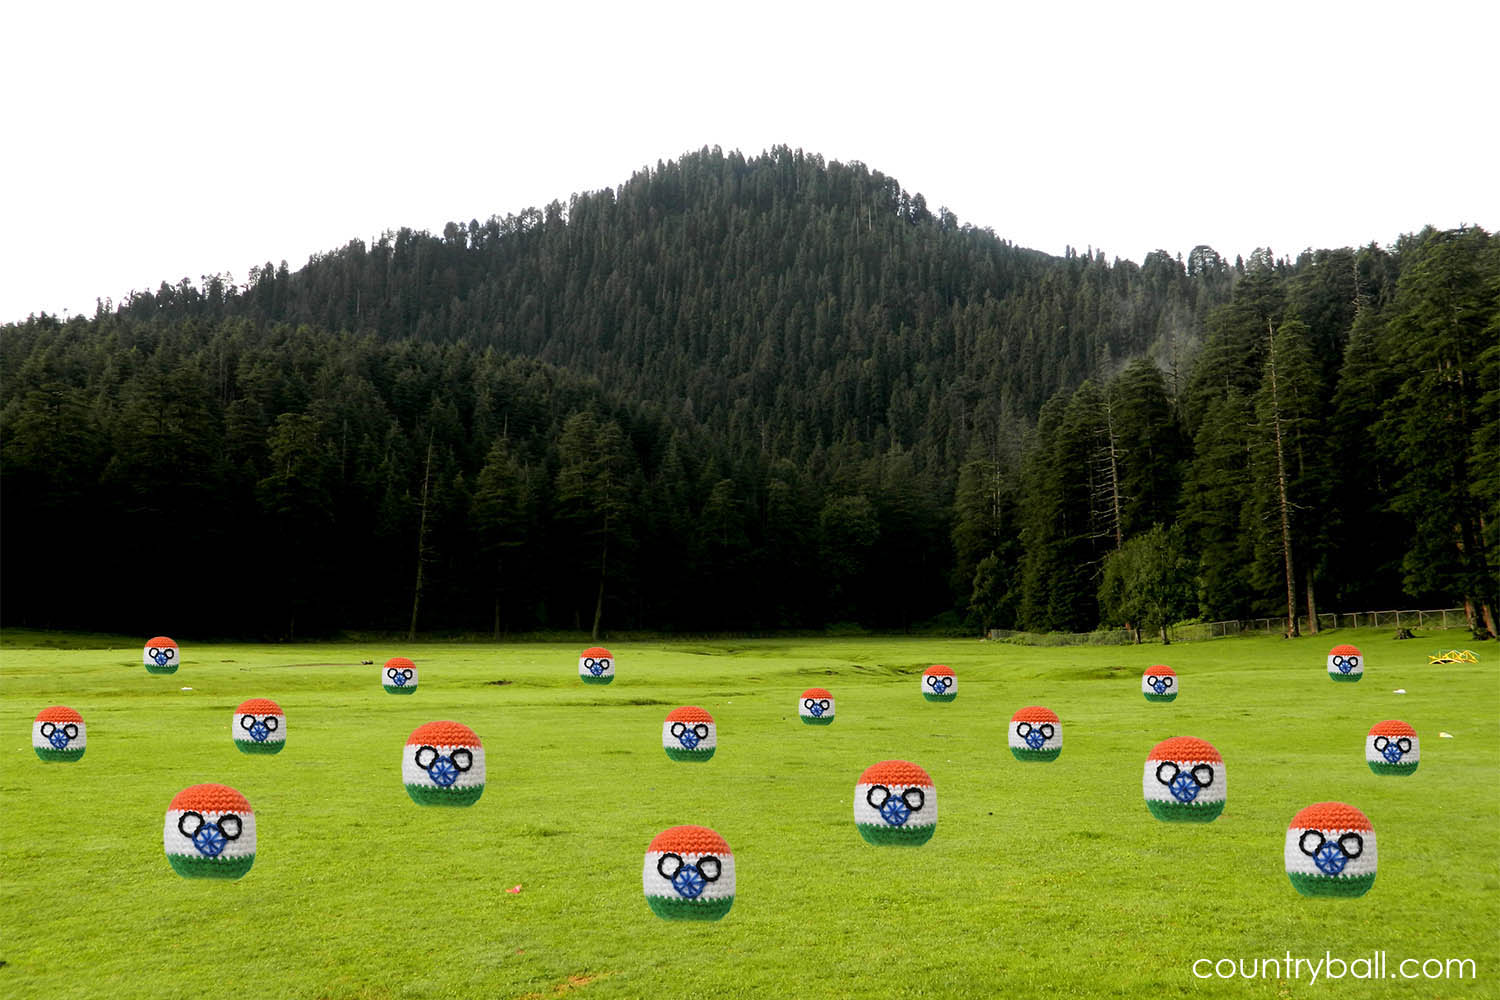 A meadow full with Indiaballs